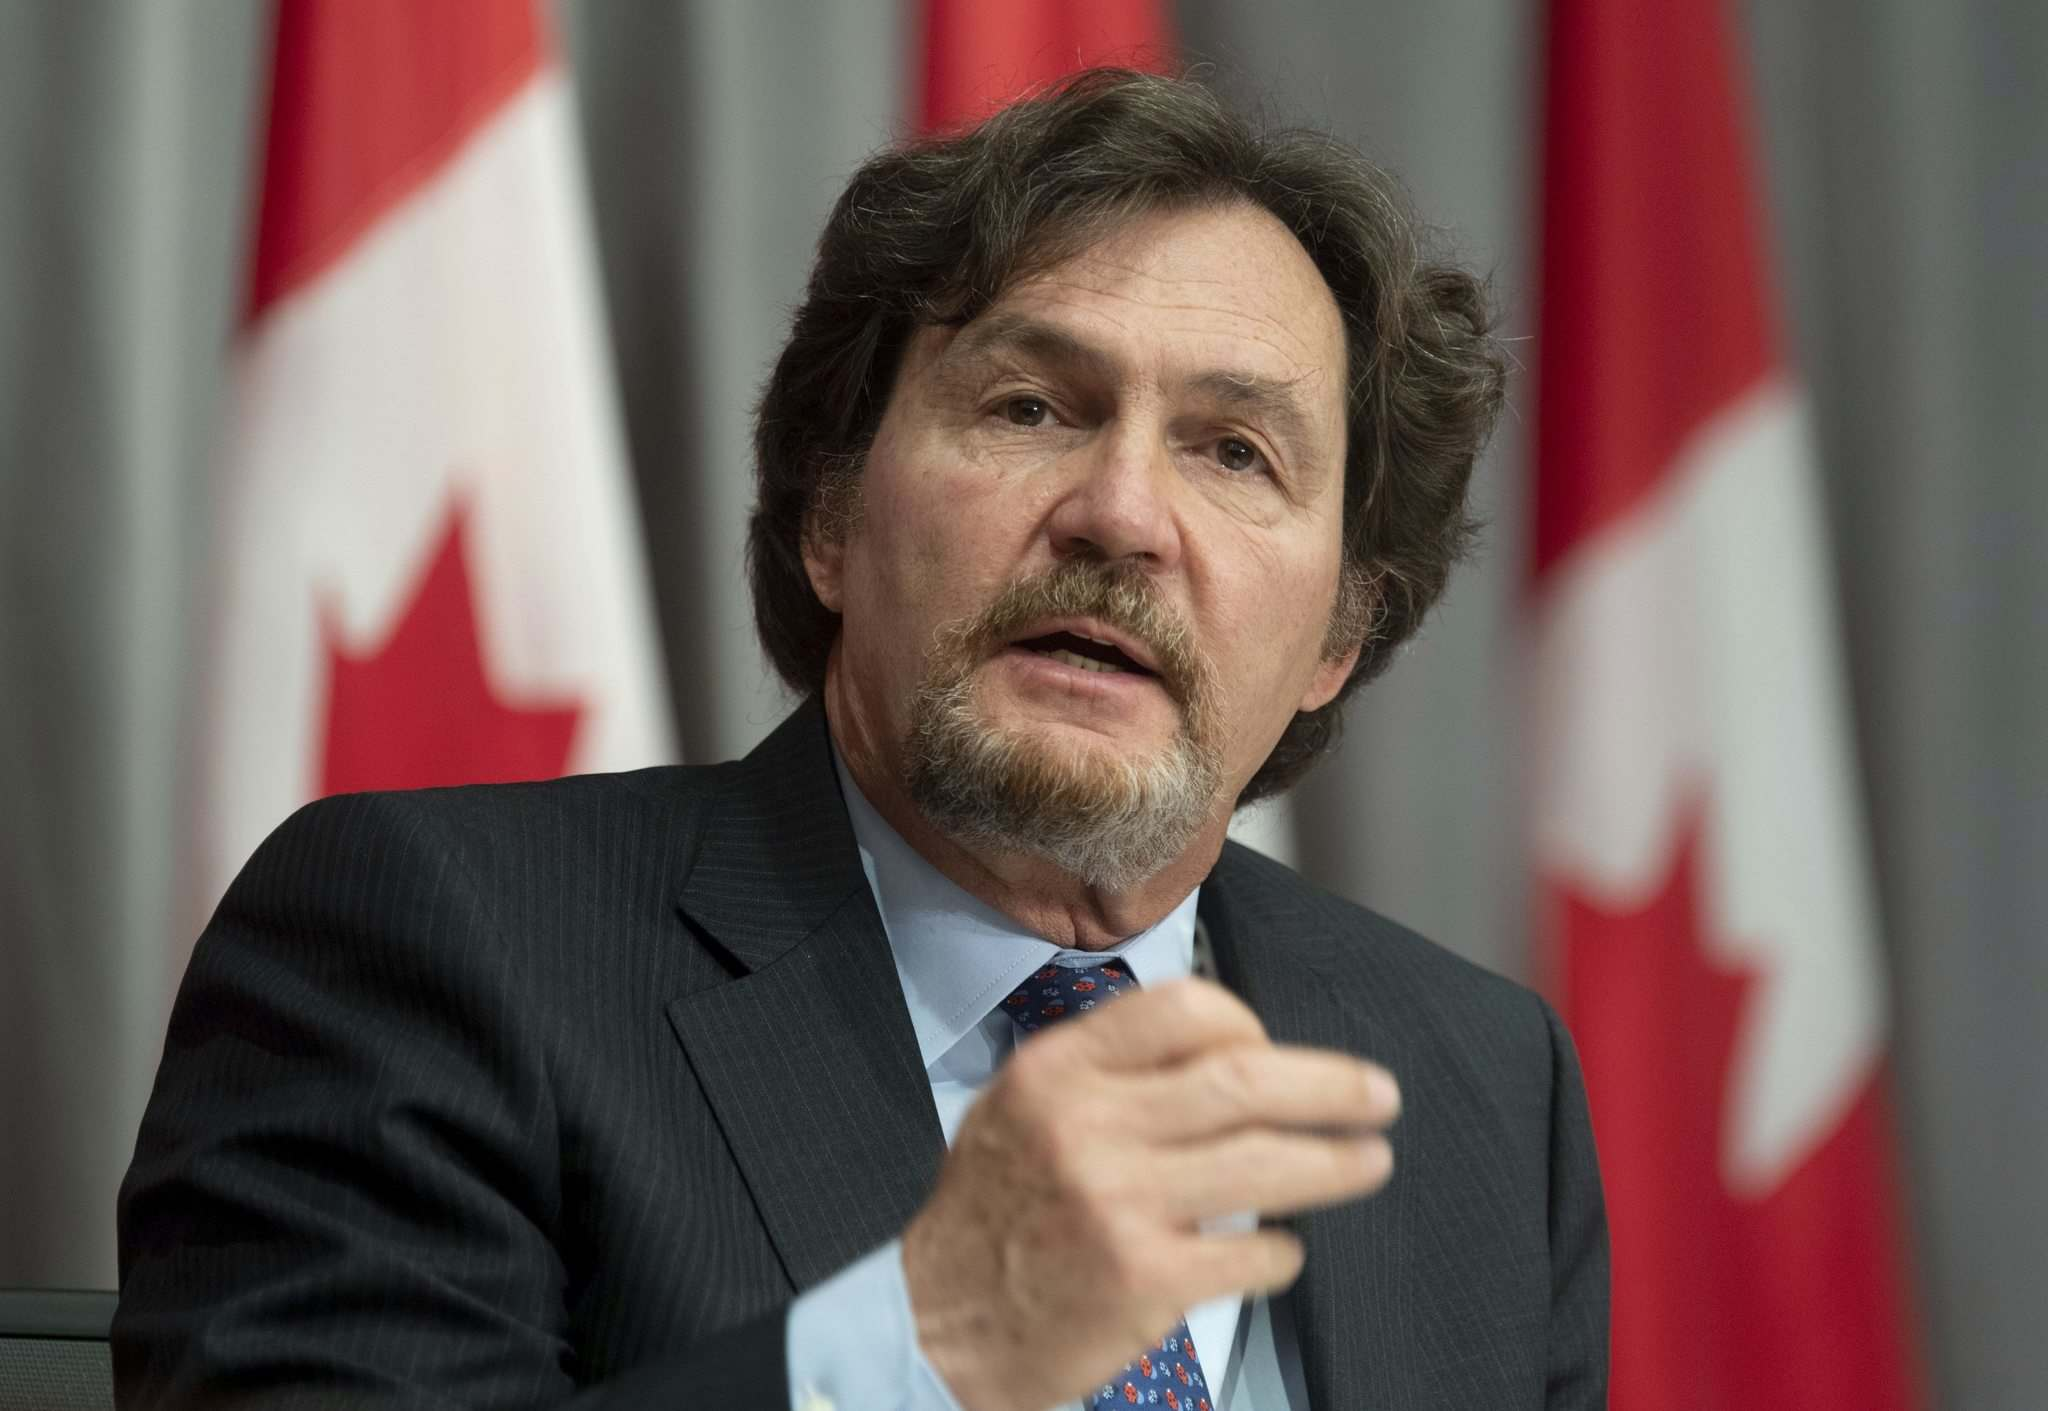 Adrian Wyld / The Canadian Press</p><p>Supreme Court of Canada Chief Justice Richard Wagner responds to a question during his annual news conference on June 18 in Ottawa.</p>